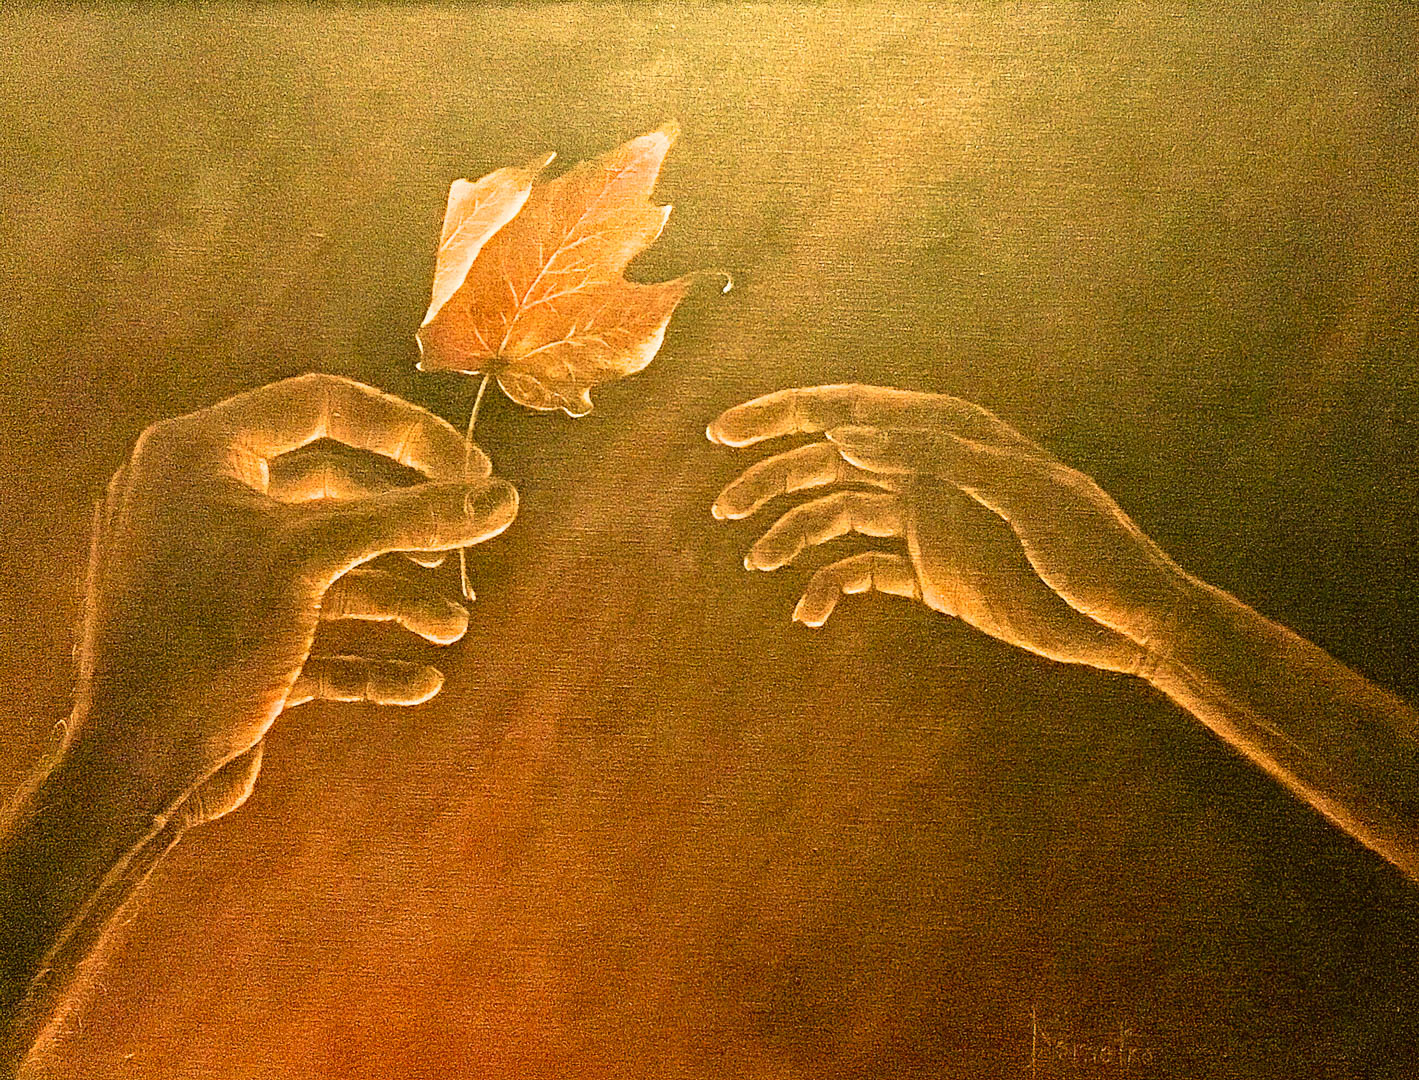 A Leaf for You My Love by Jim Demetro